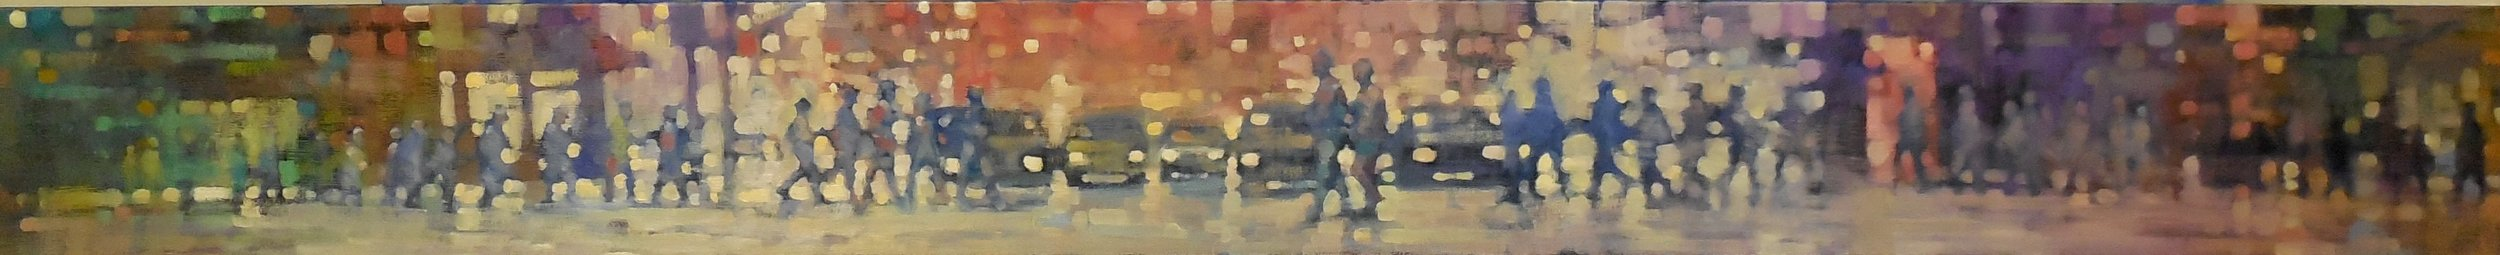 "David Hinchliffe ""Street Panorama"" Oil on Canvas 102"" x 10"""